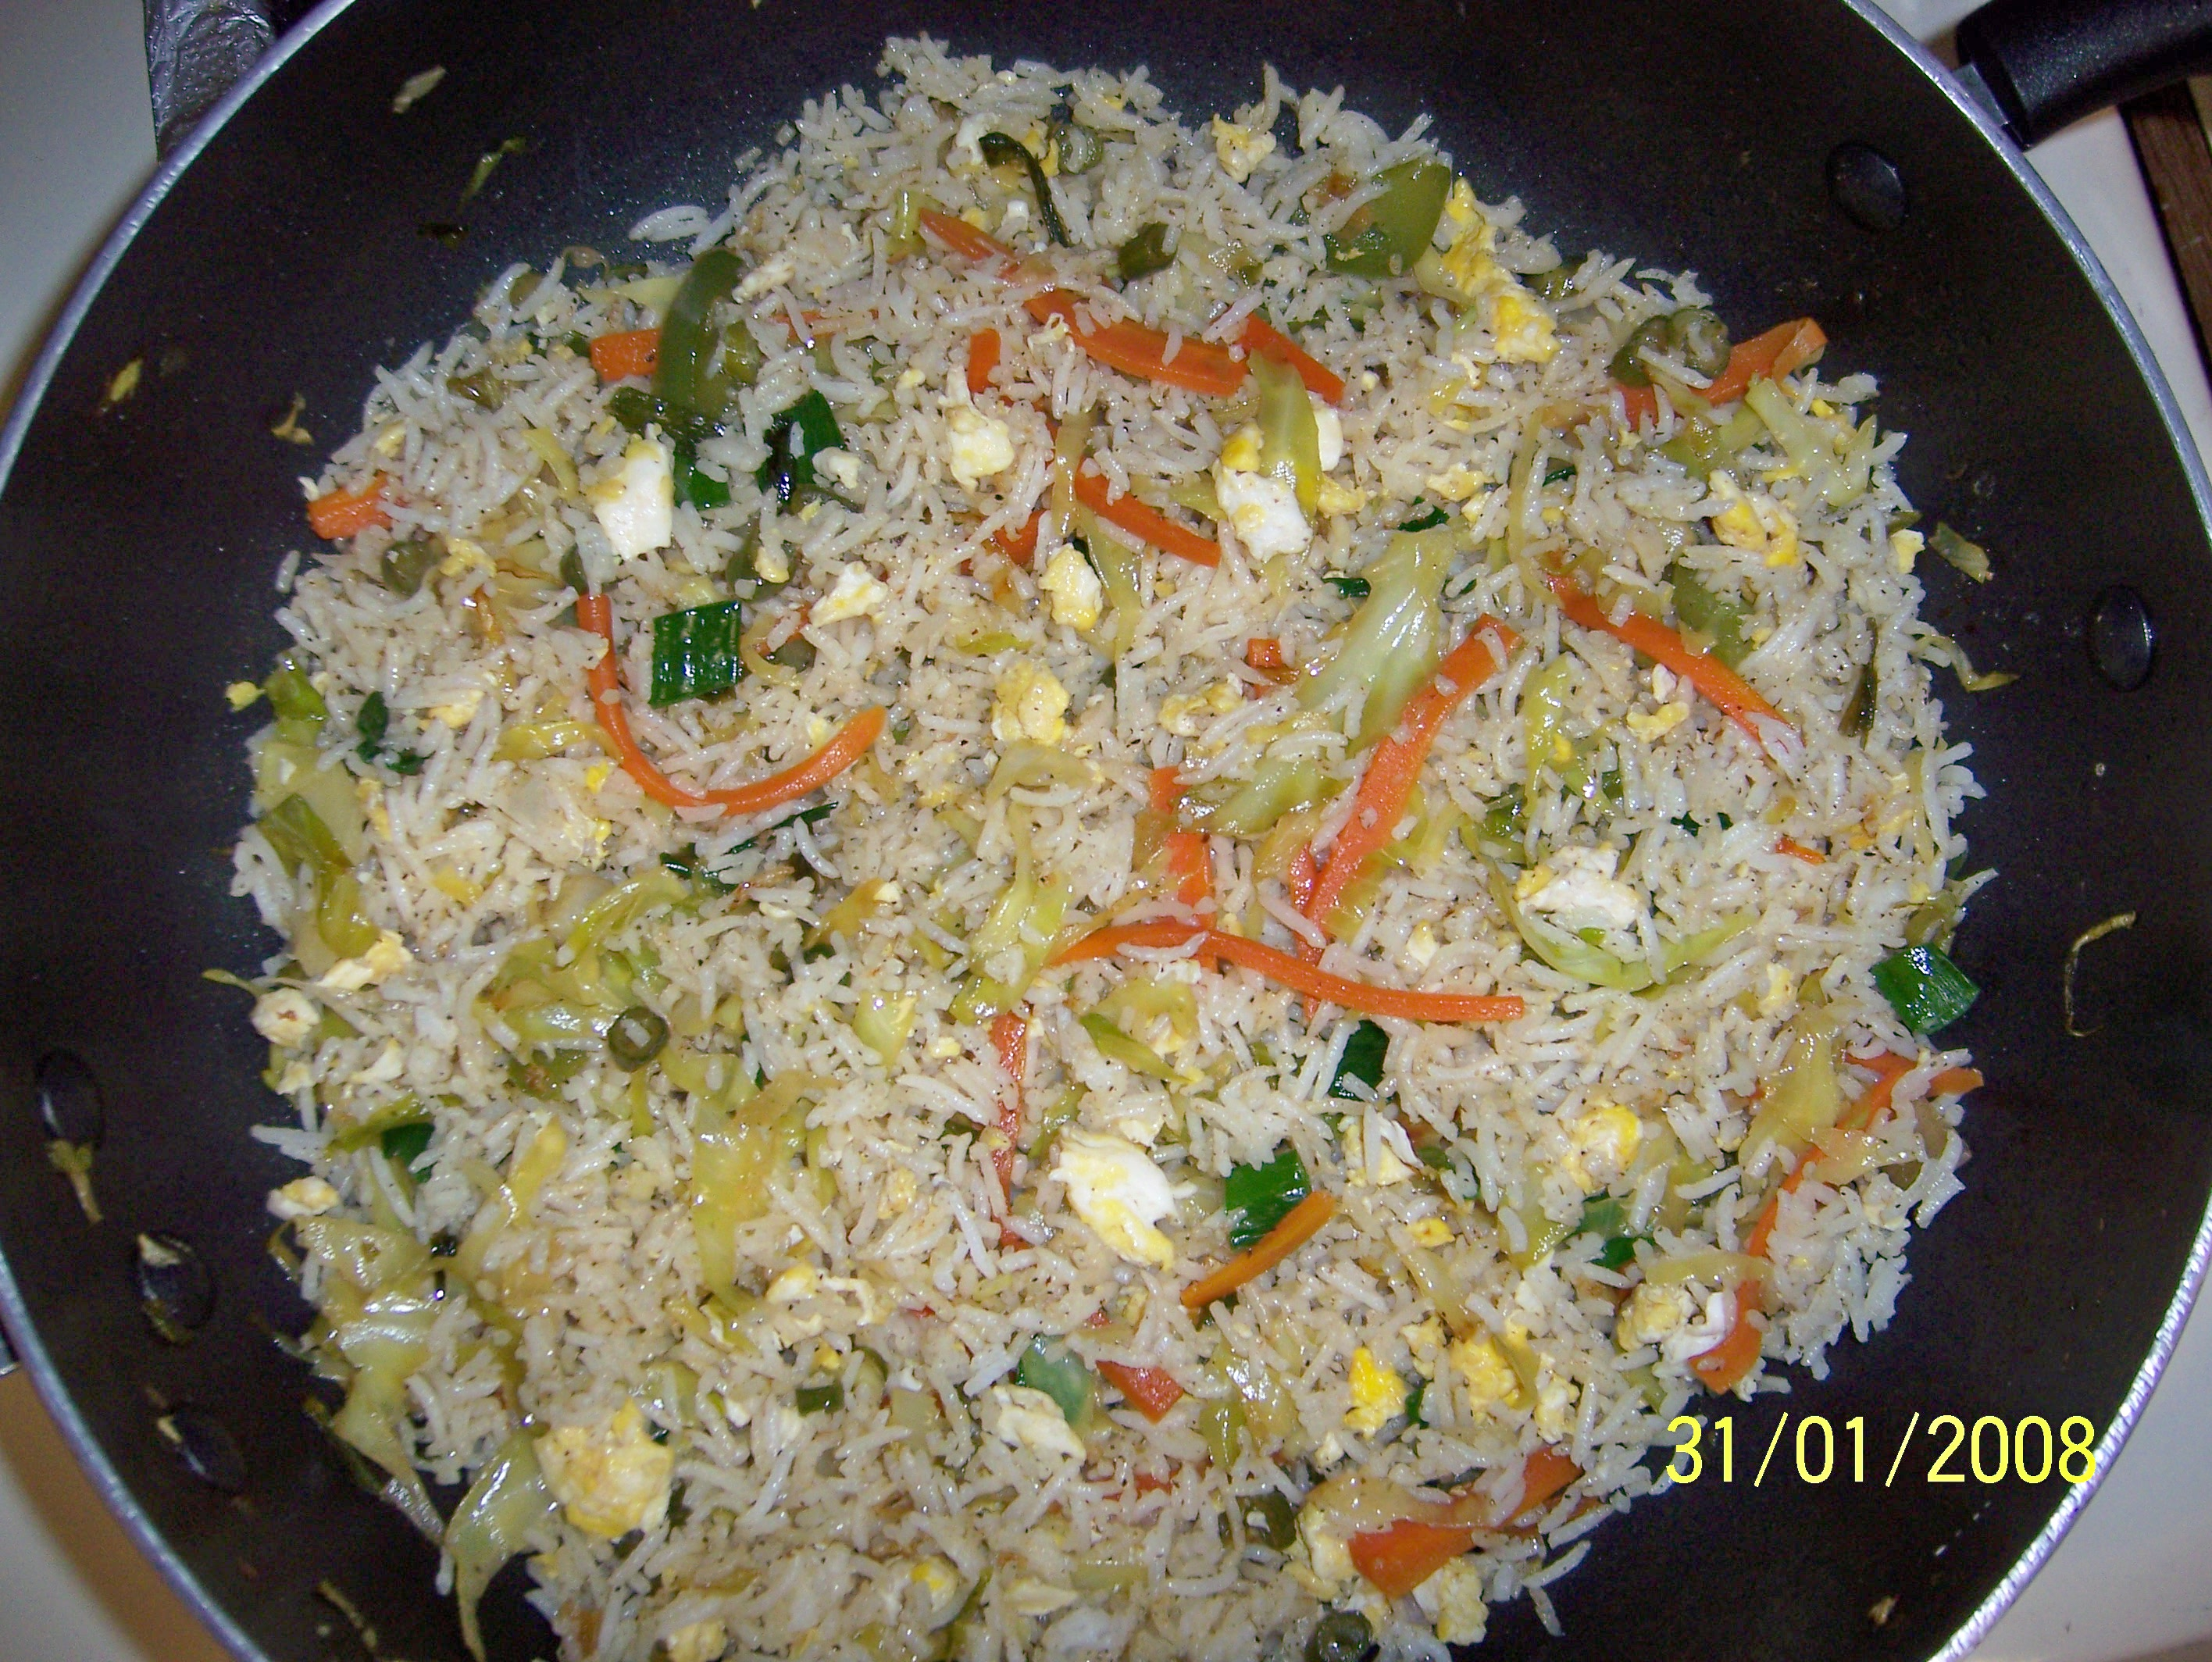 Vegetable and egg fried rice picture